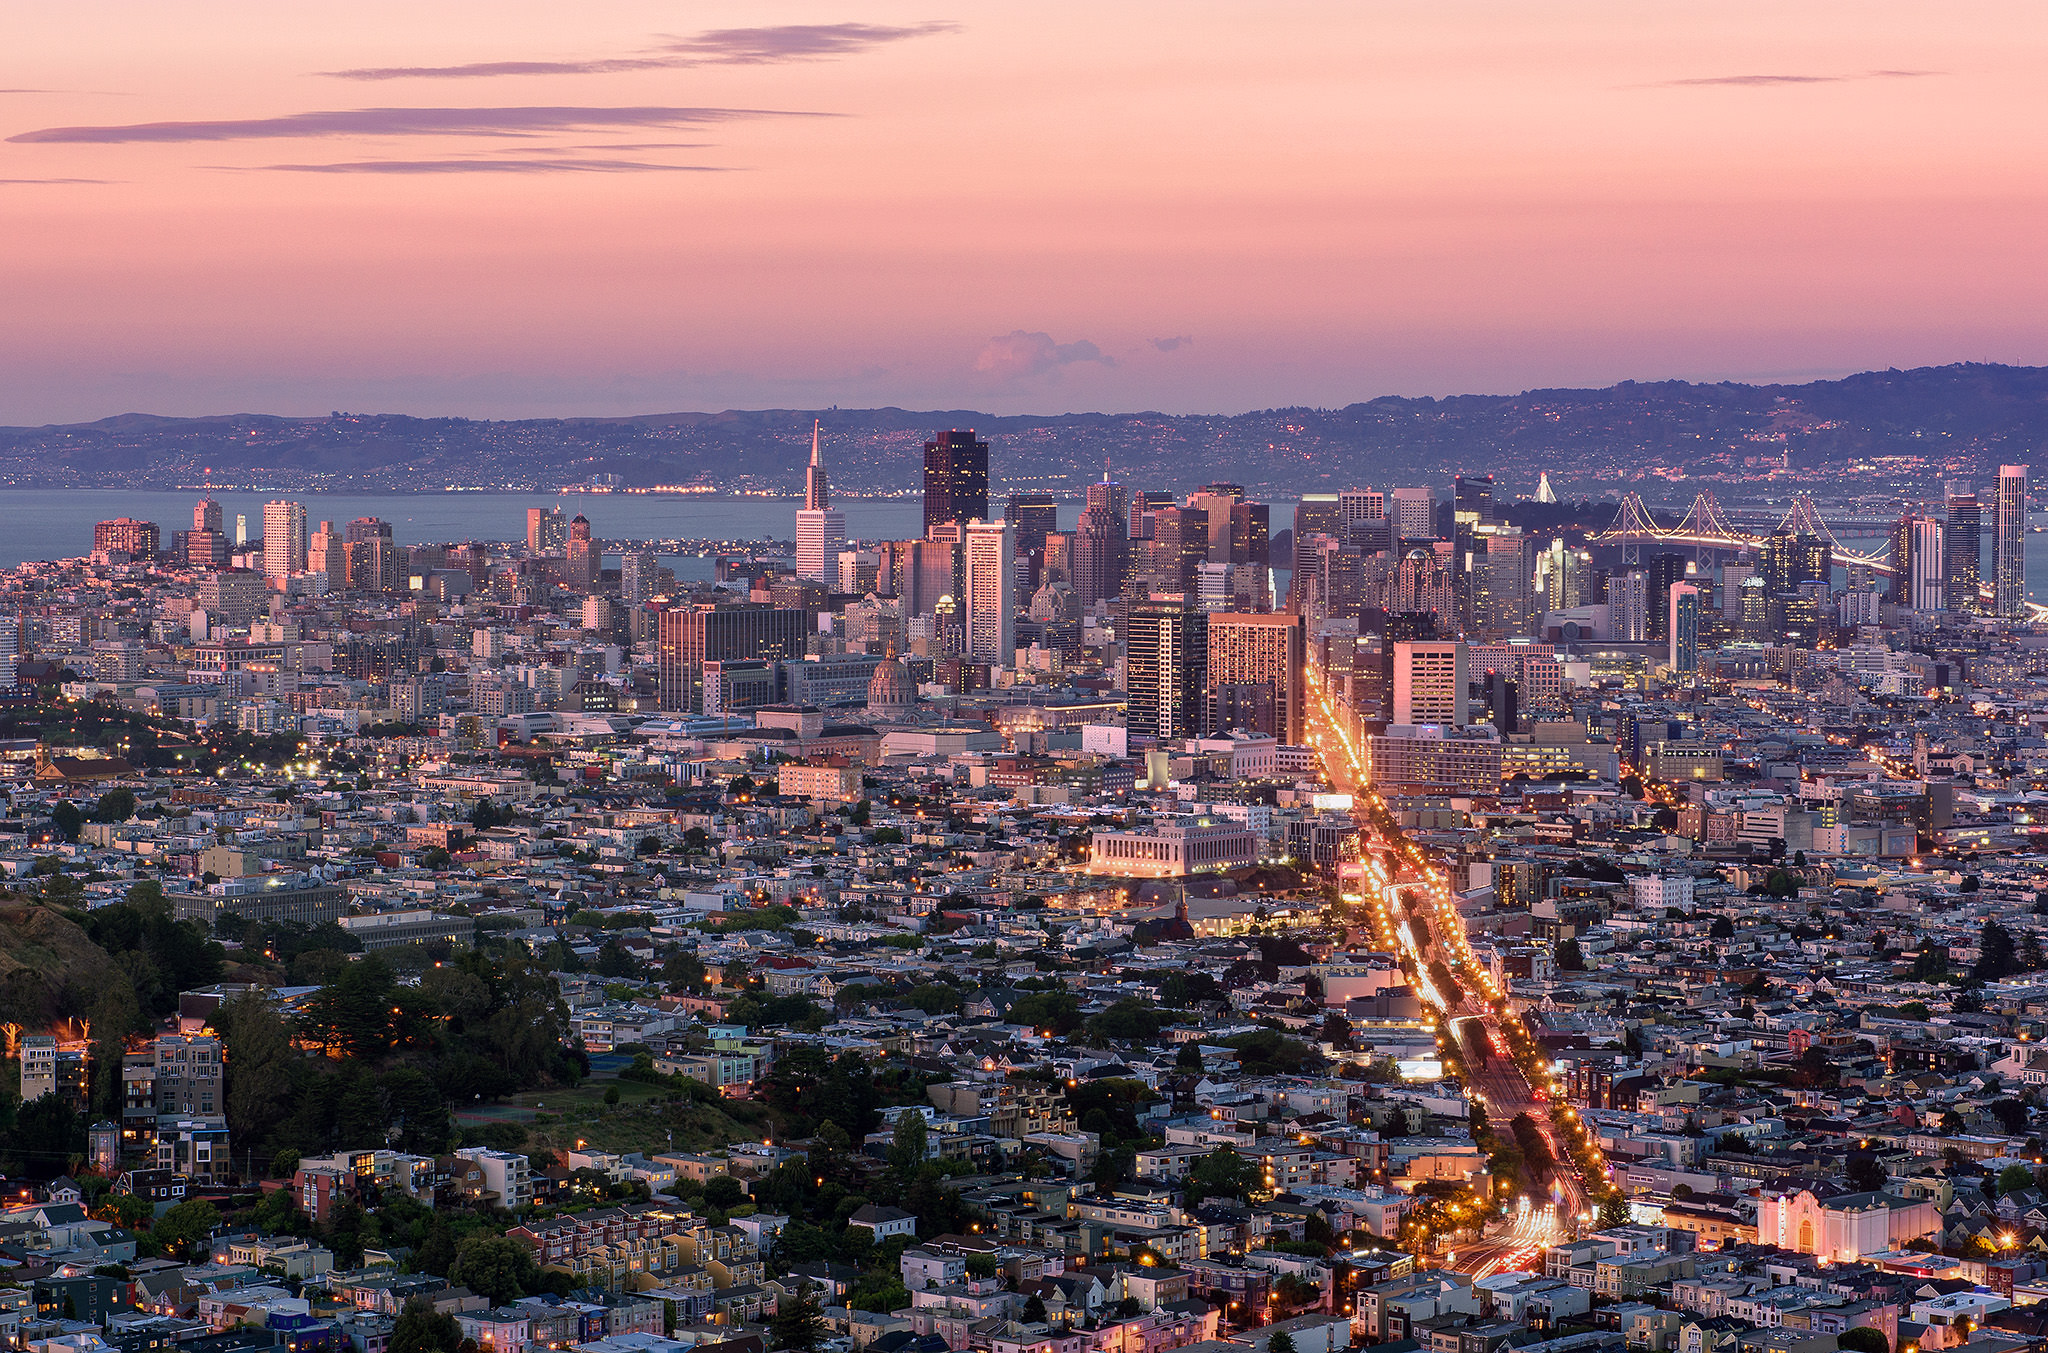 The view from up the Twin Peaks is stunning at dusk when the streetlights are turned on